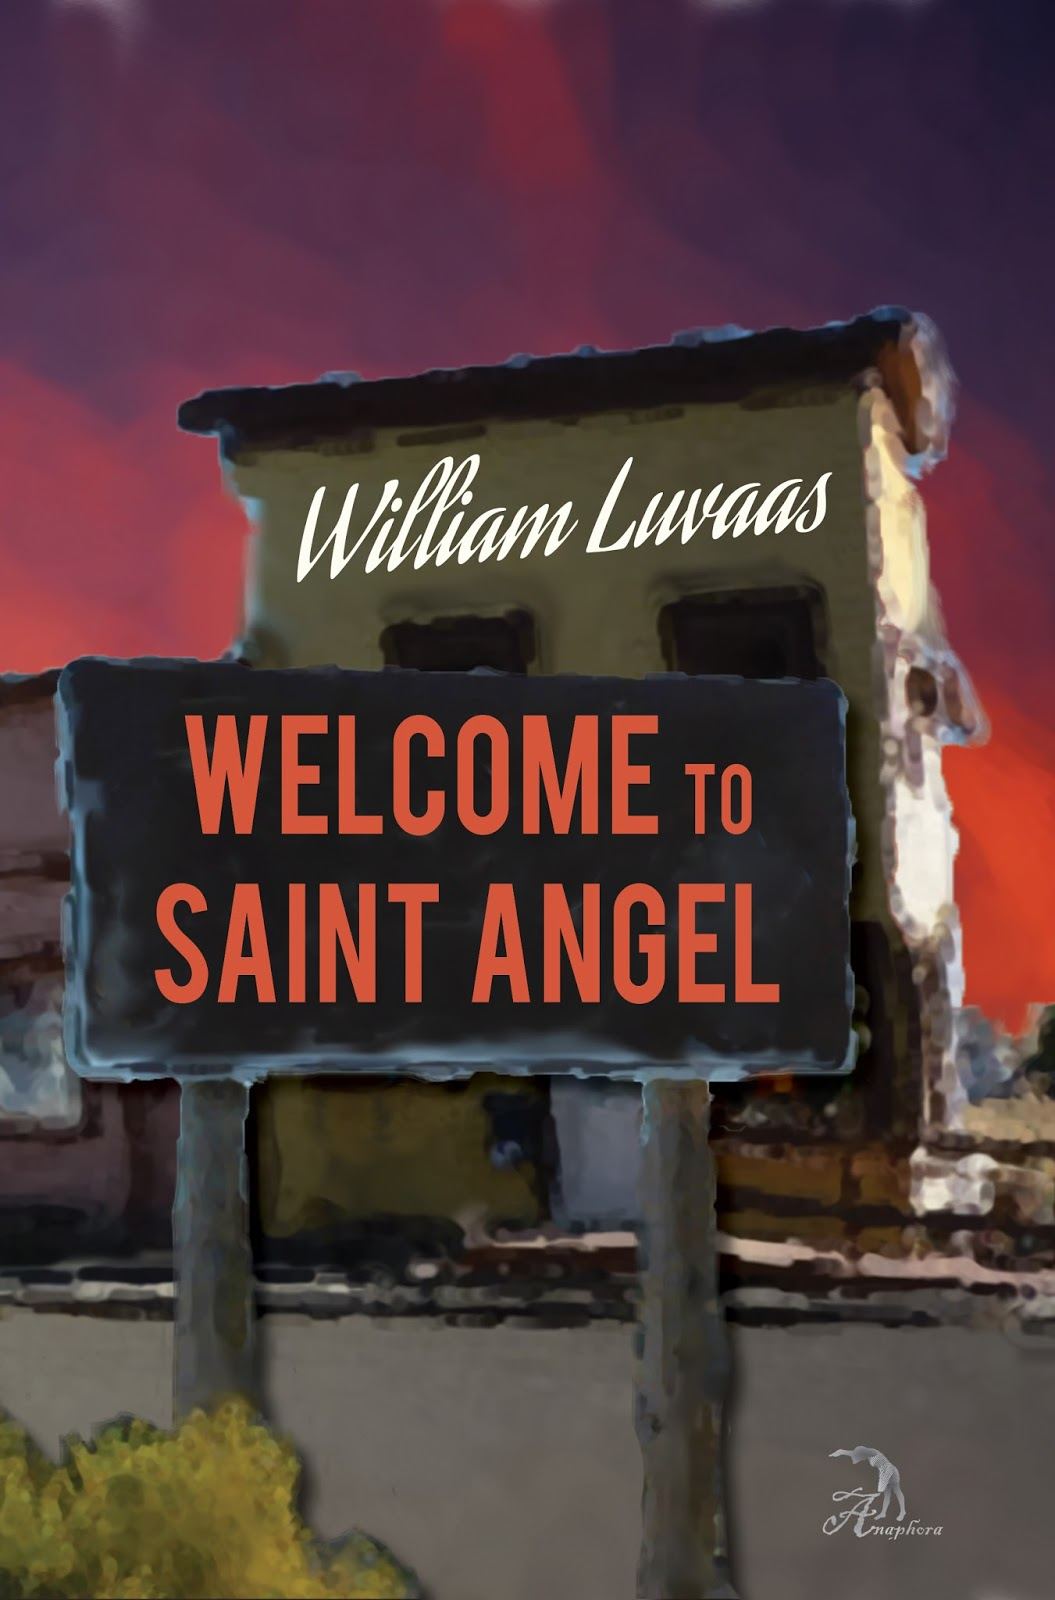 Interview with novelist William Luvaas